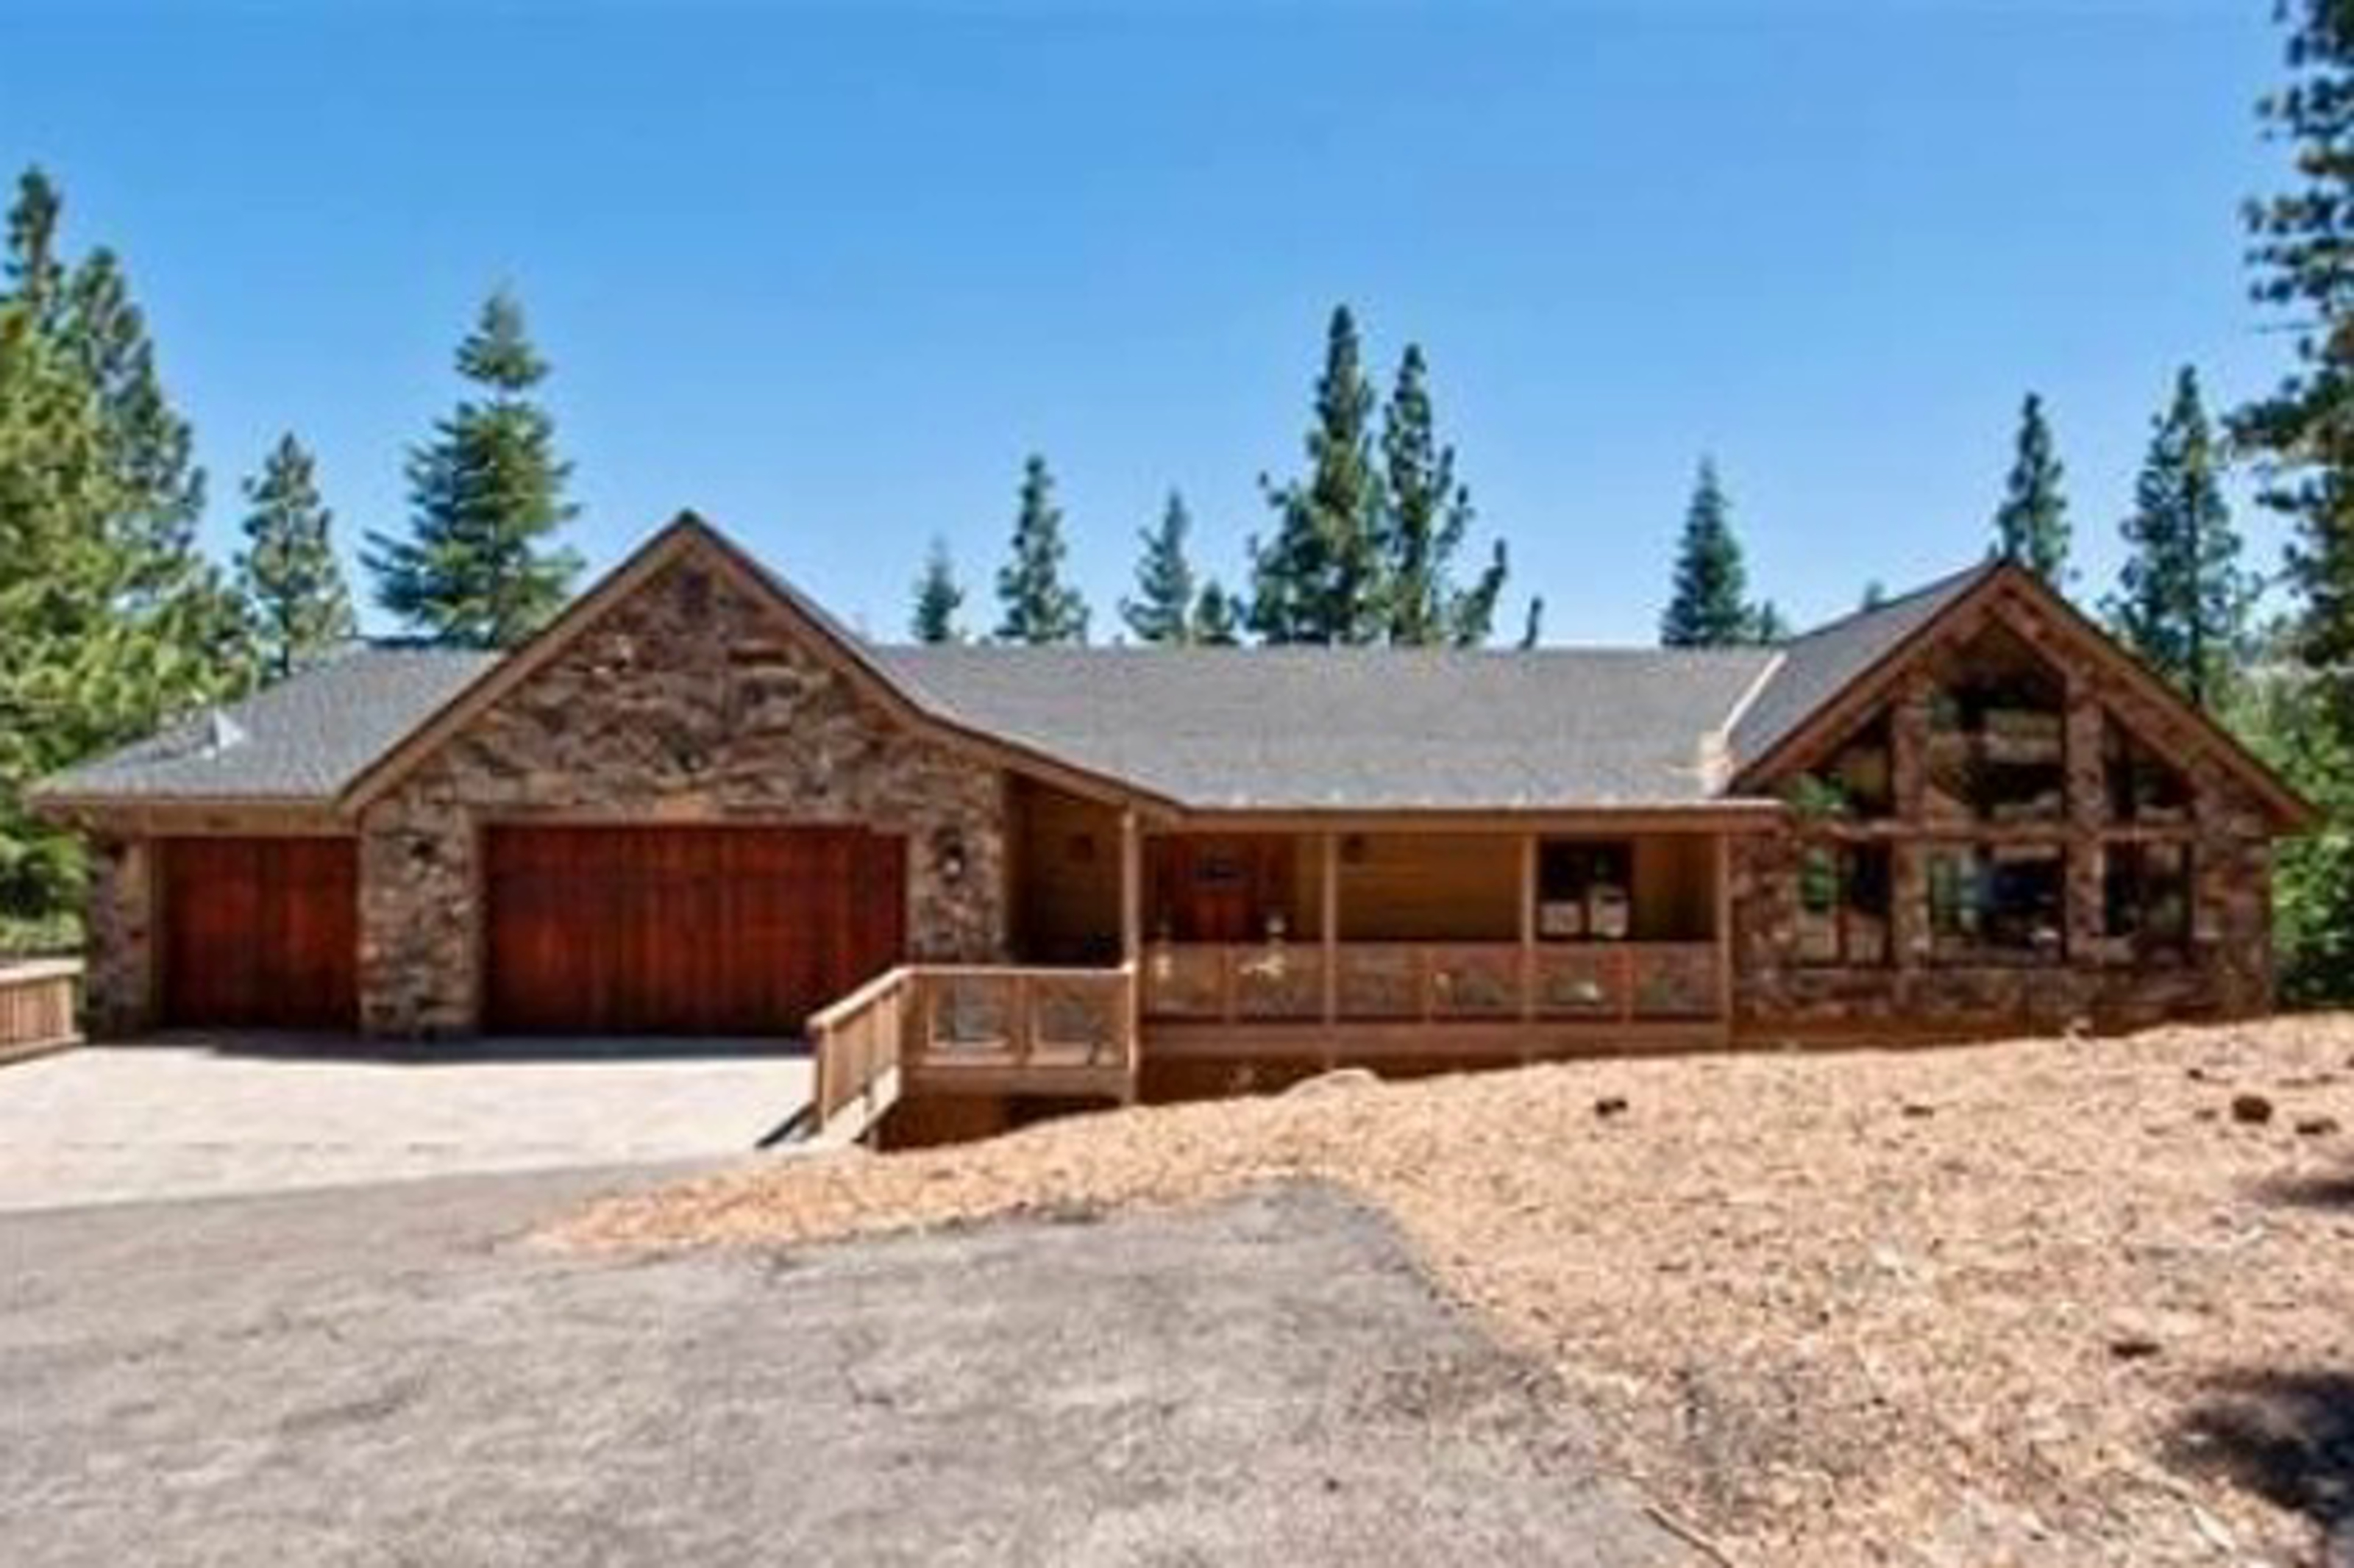 vacation states estate sherman close tahoe luxury x california retreats cabins laketahoe united south rentals lake shermanestate